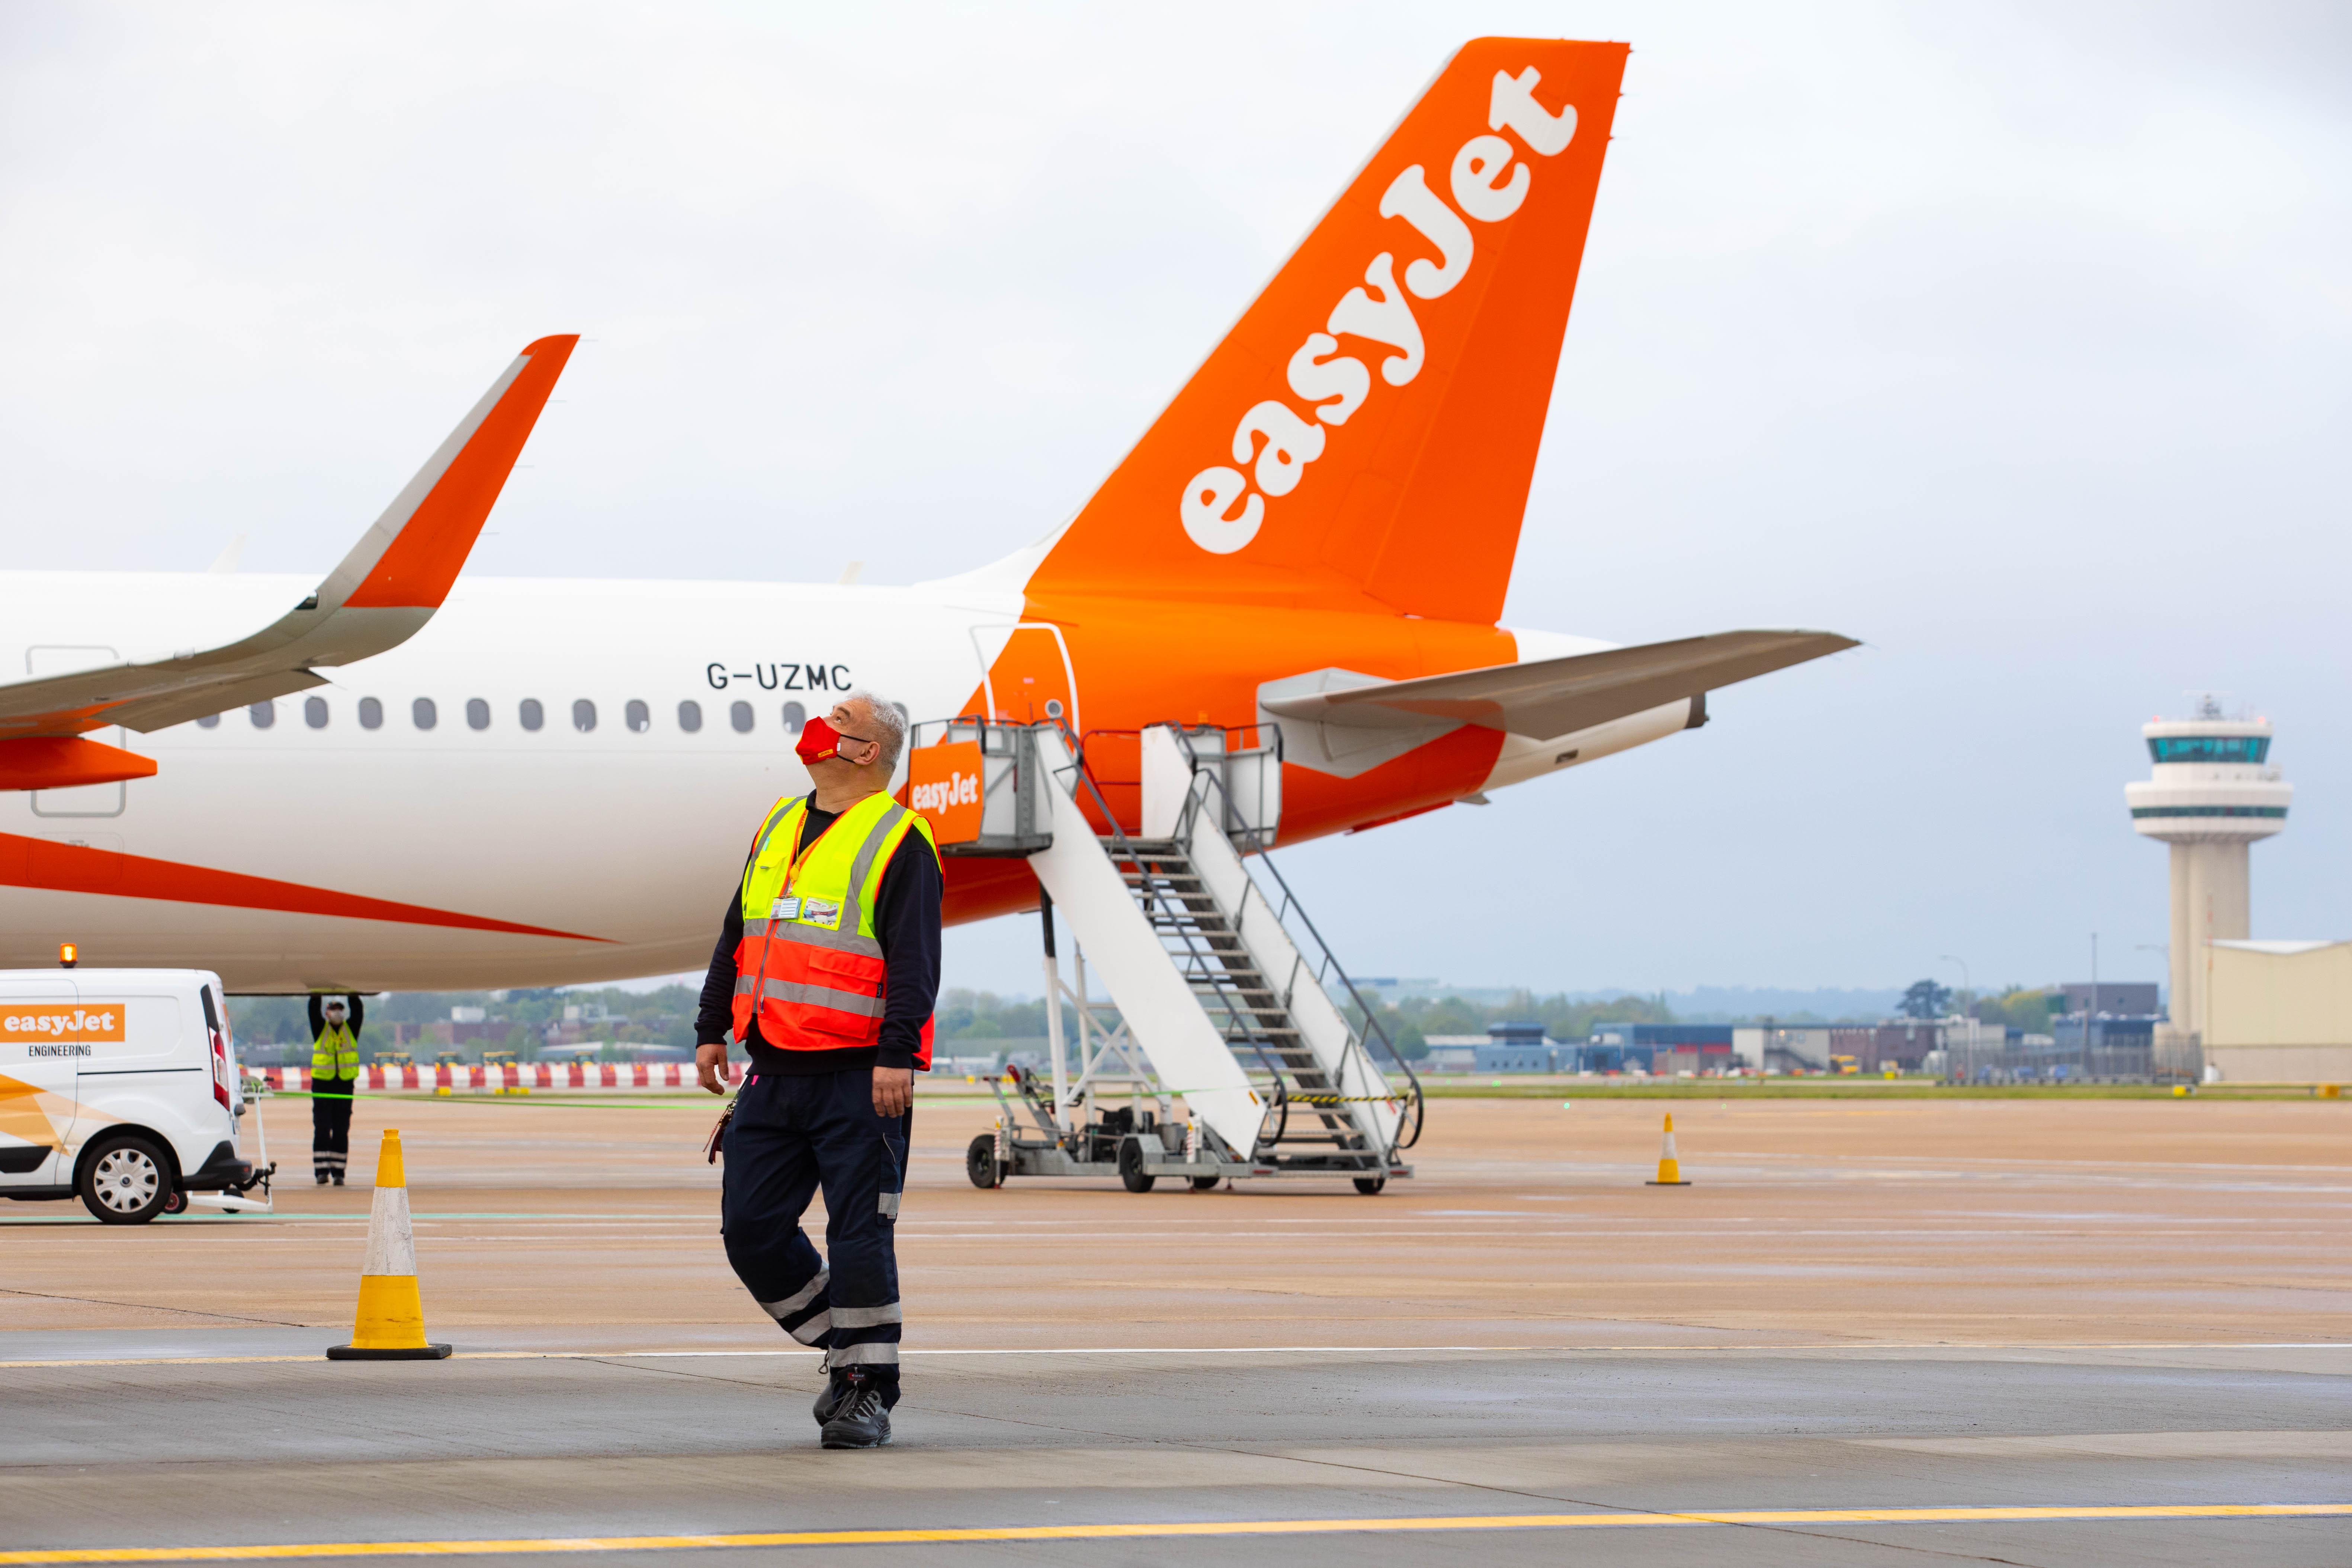 <p>EDITORIAL USE ONLY Crew prepare the first holiday and leisure flight for take-off at Gatwick Airport, as easyJet relaunch flights from the UK to green-lit destinations today, for the first time this year. Picture date: Monday May 17, 2021.</p>